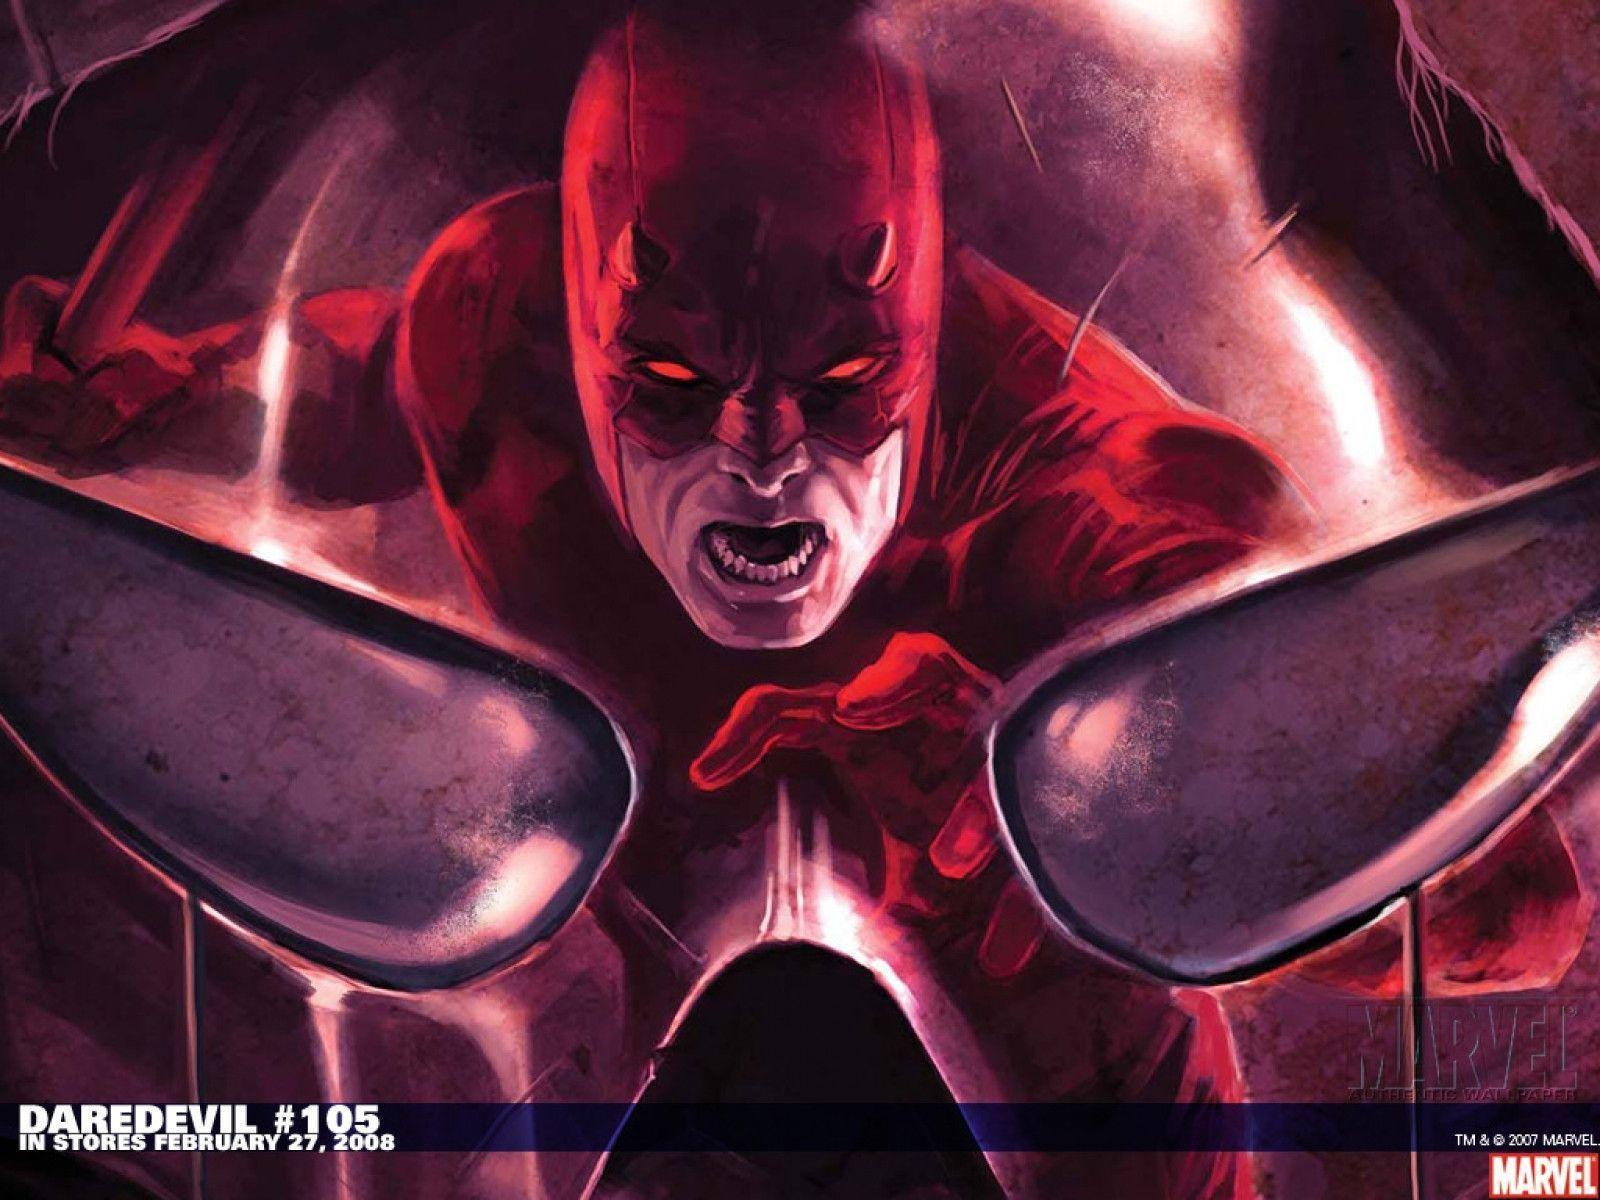 Daredevil Wallpapers at Wallpaperist